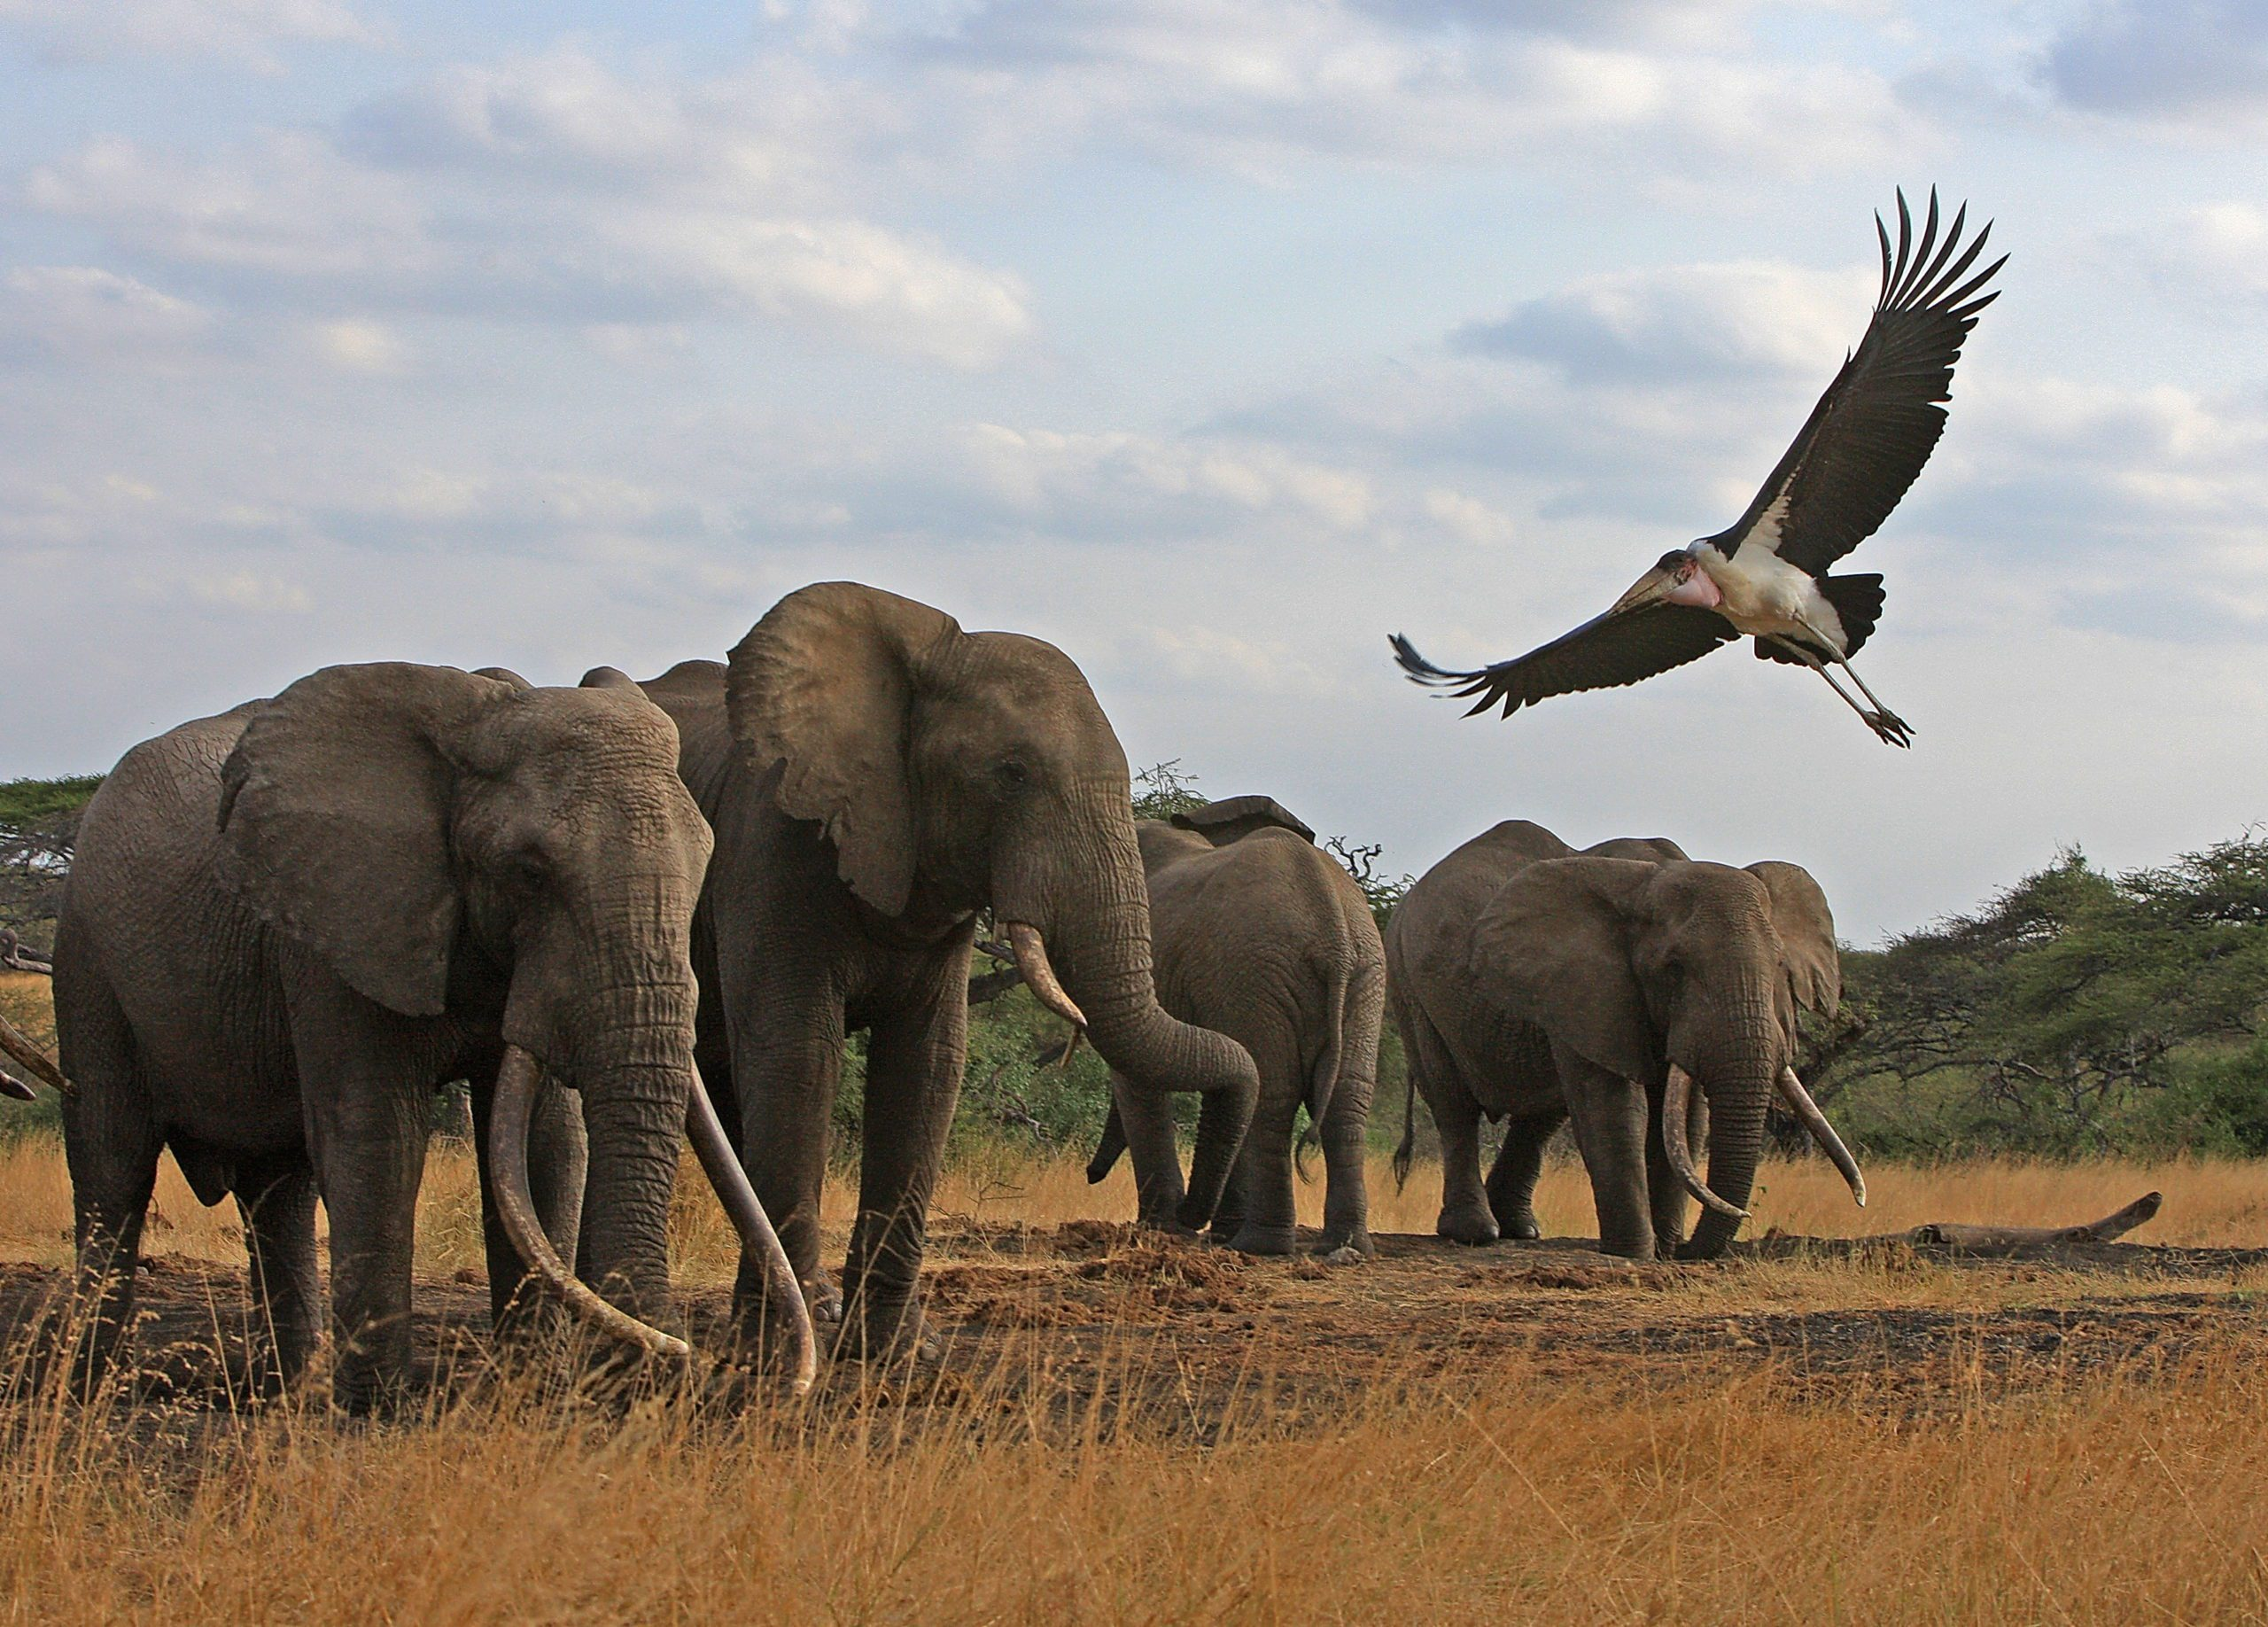 herd of tusker elephants at Ol Donyo with an eagle flying